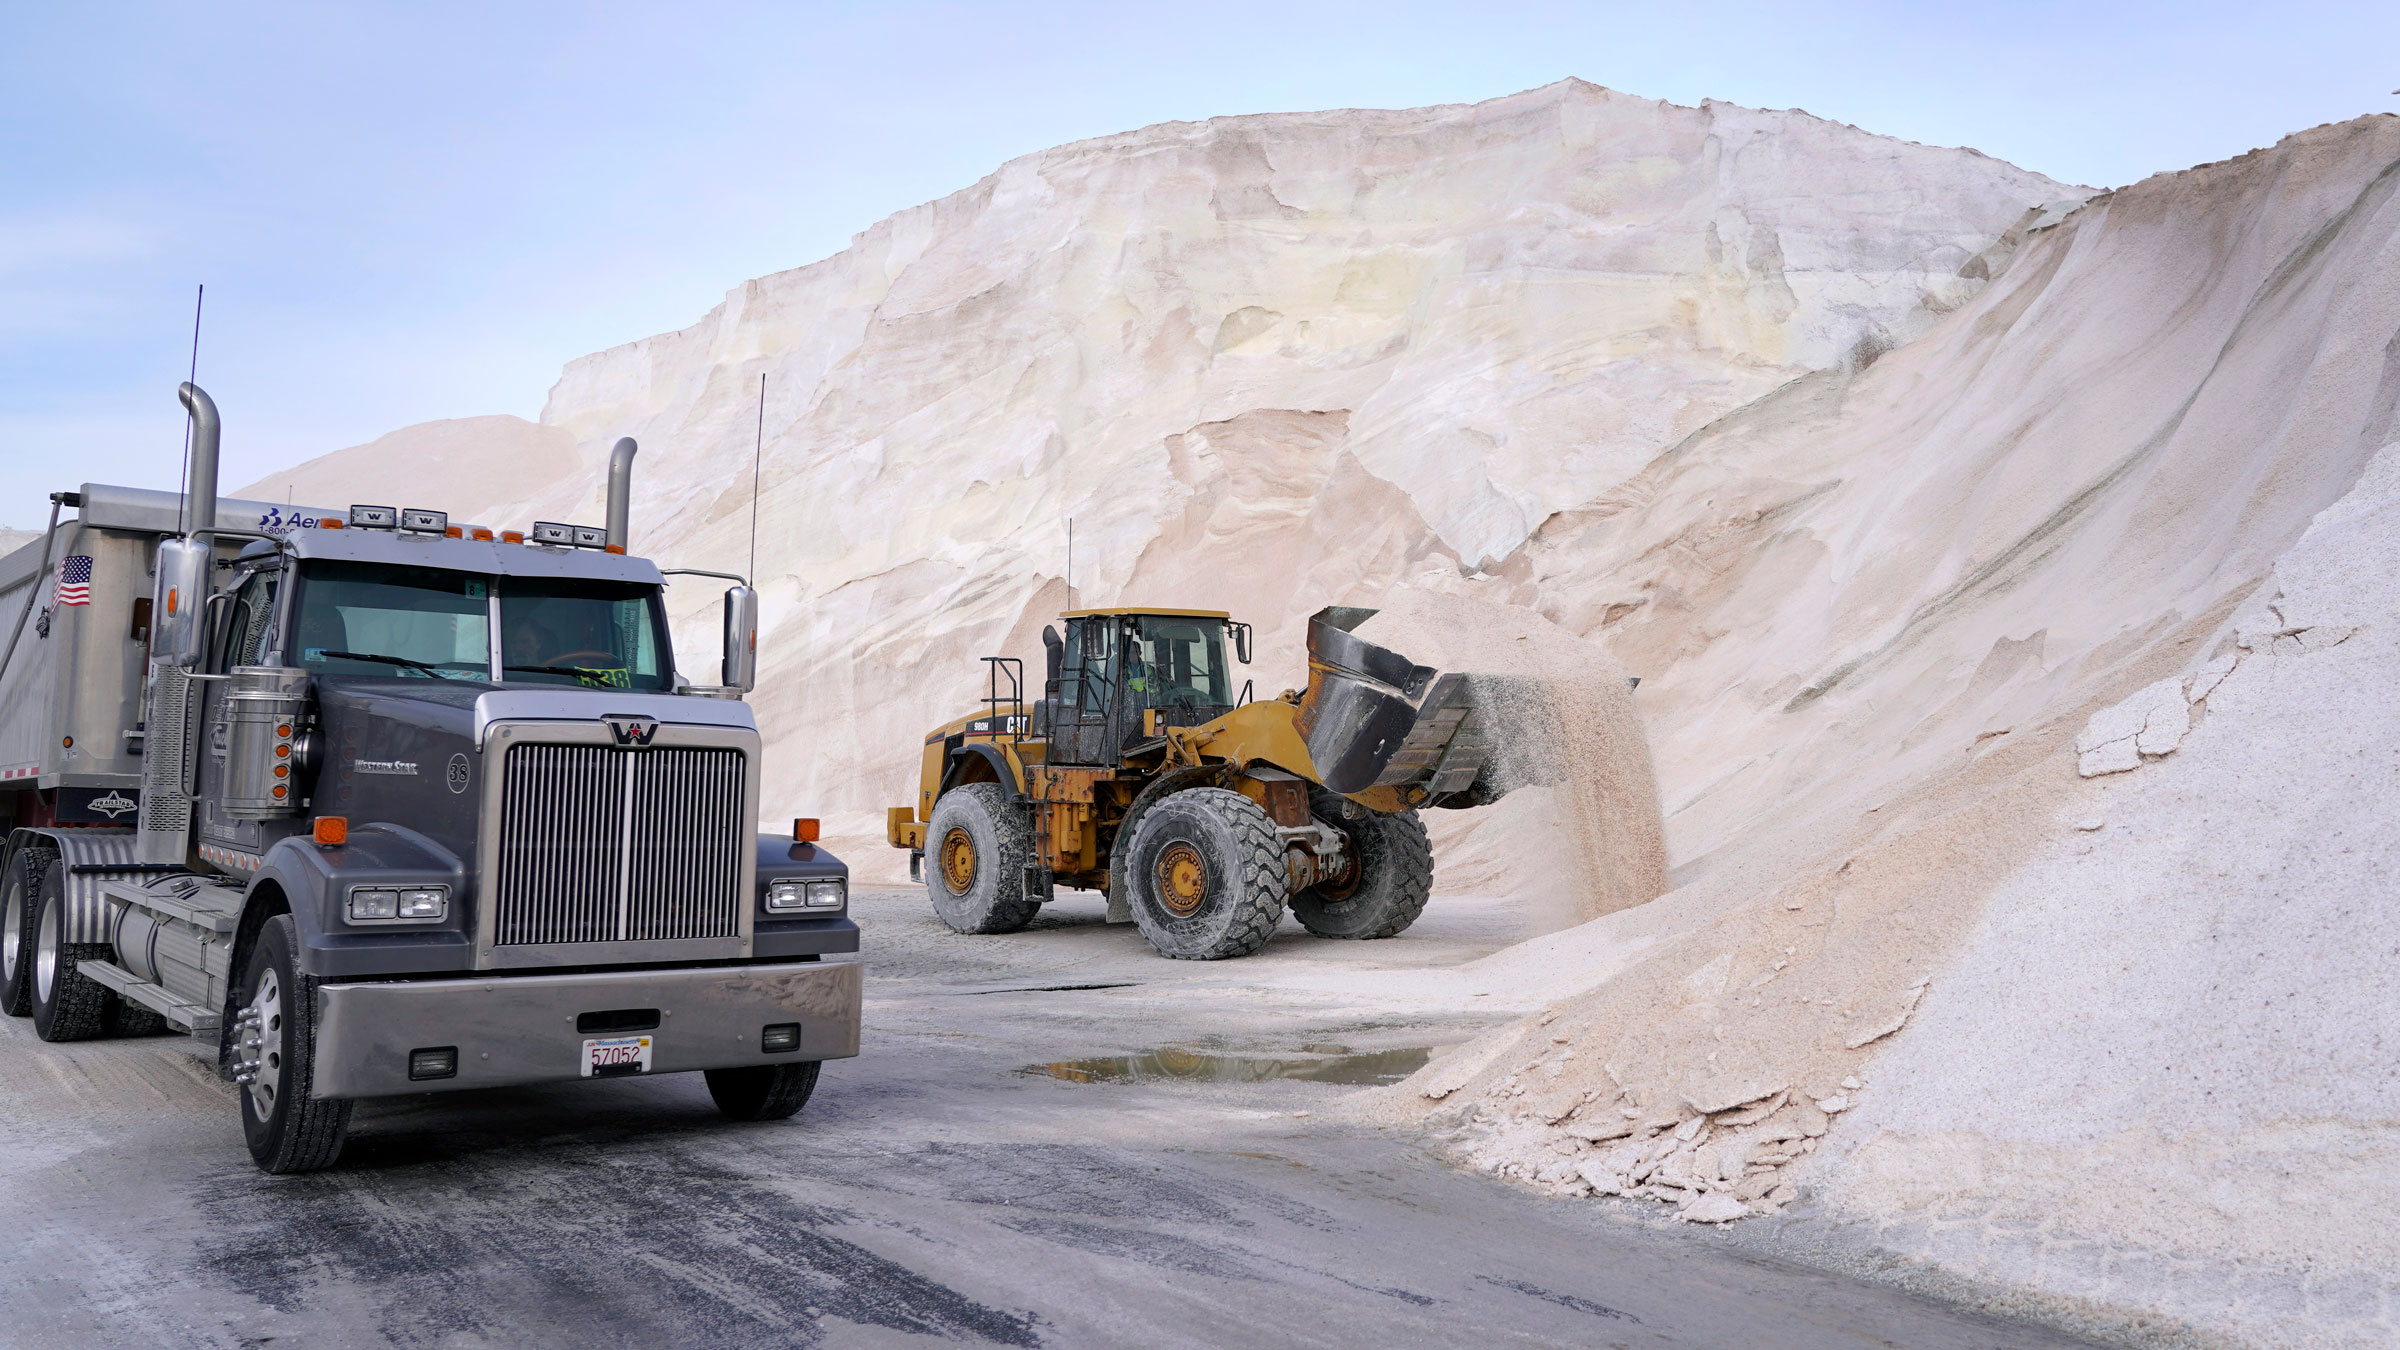 A dump truck in Chelsea, Massachusetts, waits for a front-end loader to pour road salt into it on Wednesday. The salt would be delivered to area municipal depots.